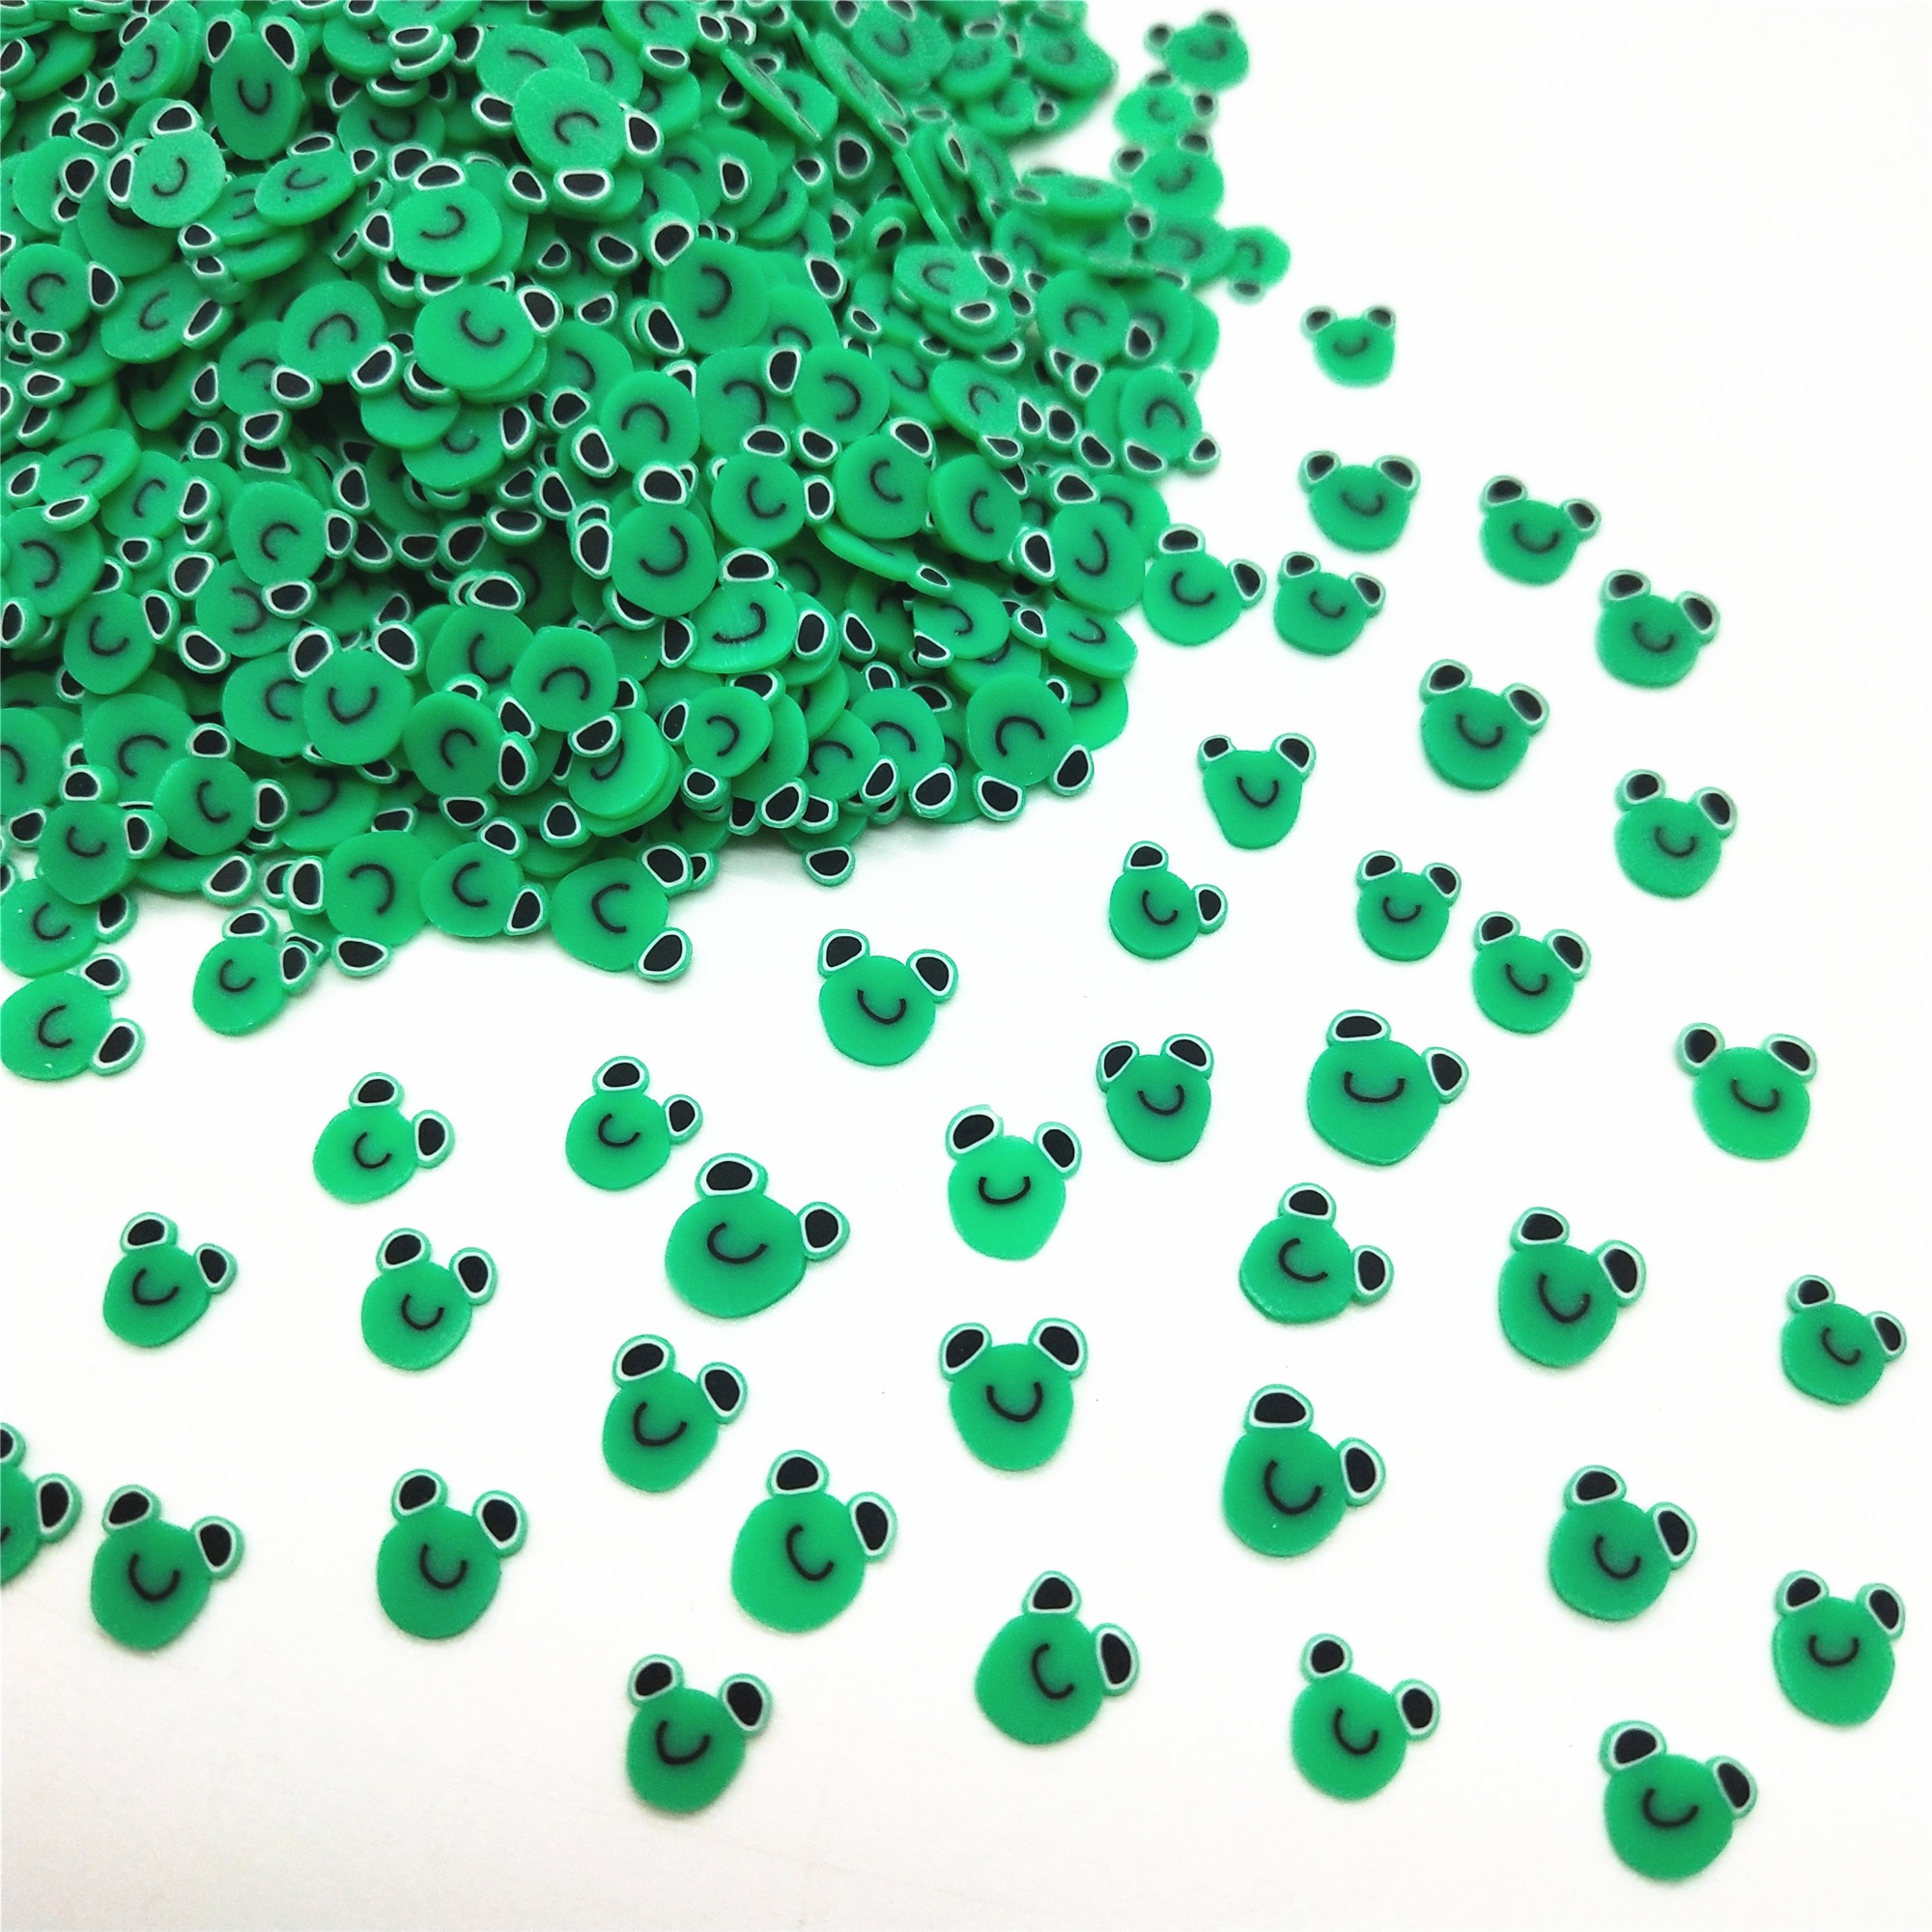 20g/lot Green Frog Polymer Clay Slices for DIY Crafts 5mm Plastic Klei Mud Particles Animal Clays